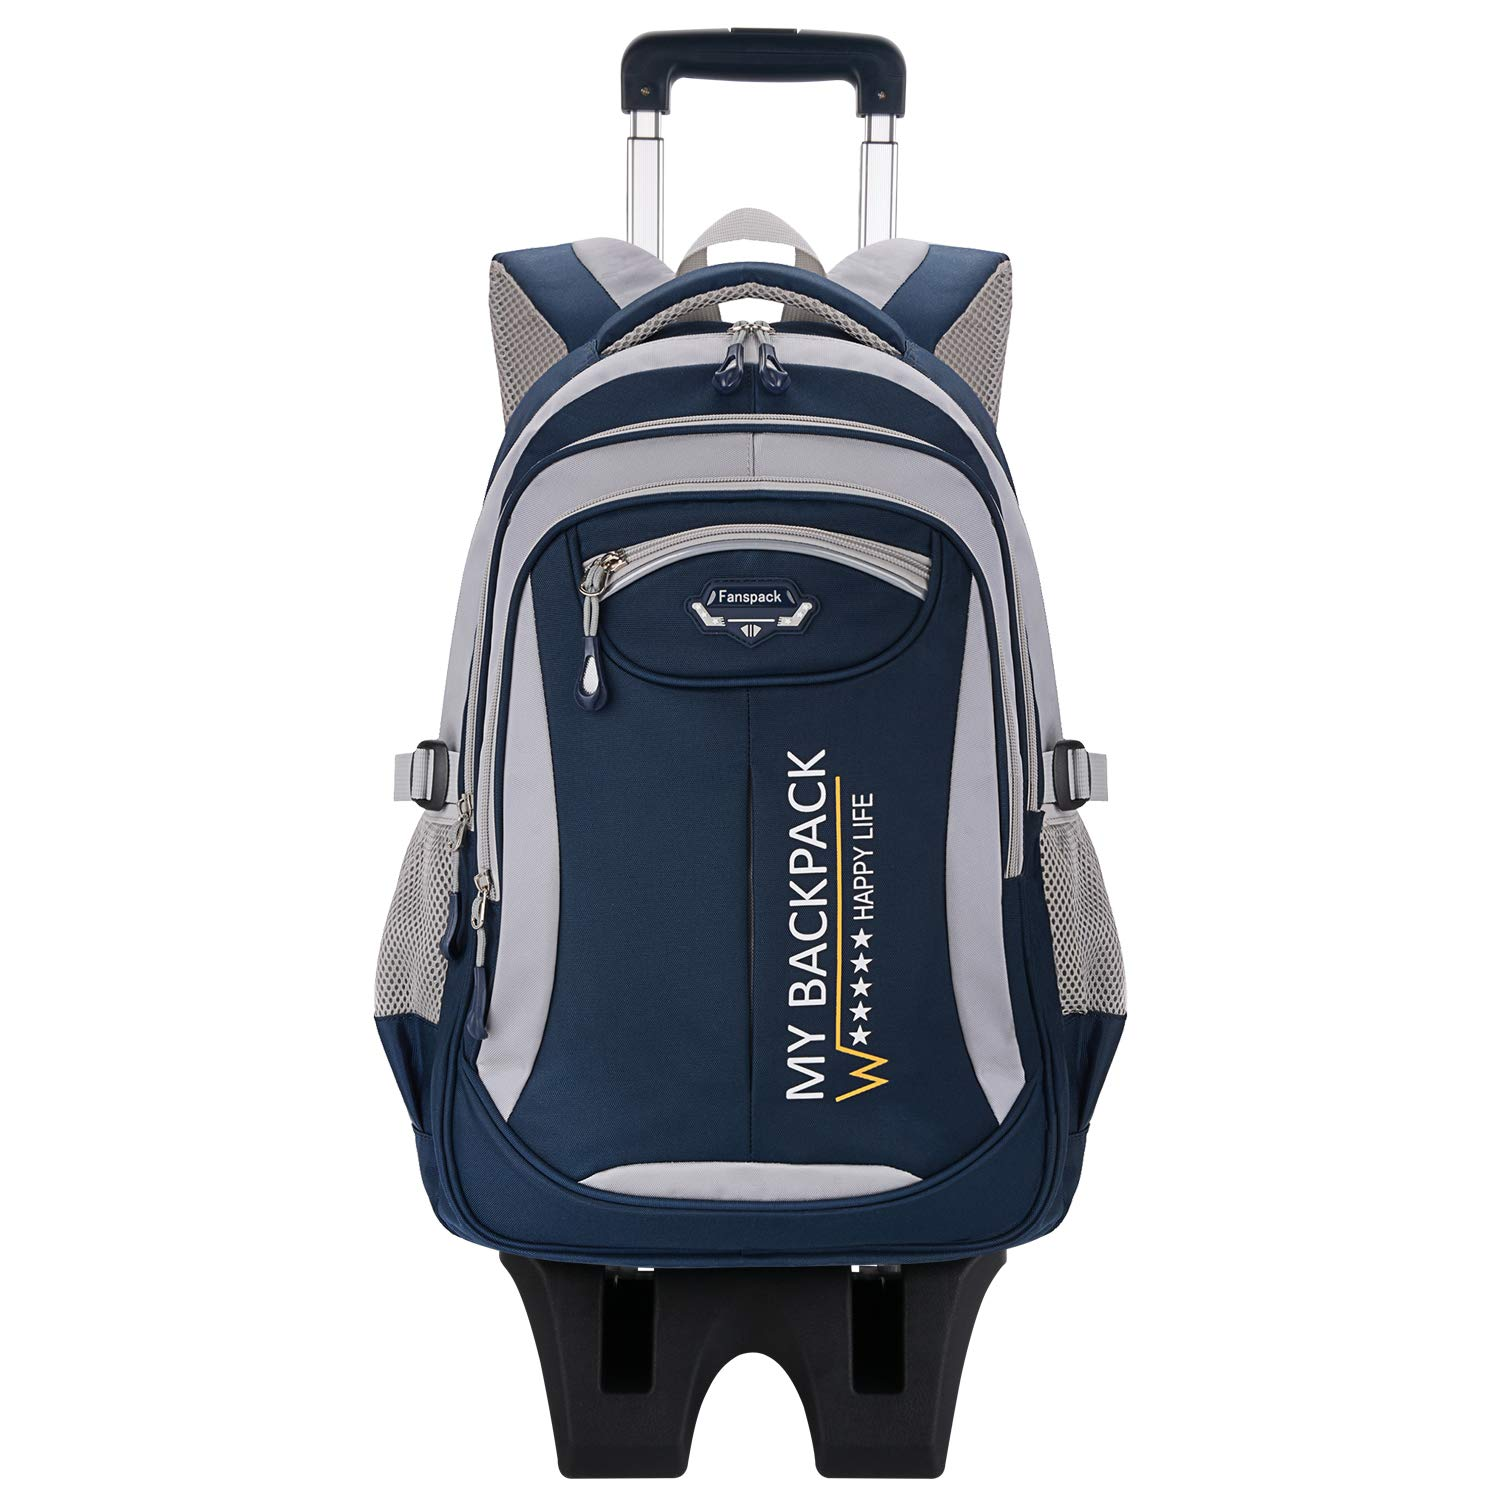 Rolling Backpack, Fanspack 2019 New Wheeled Backpack Trolley School Bags for Boys Backpack with 6 Wheels Kids Backpack by Fanspack